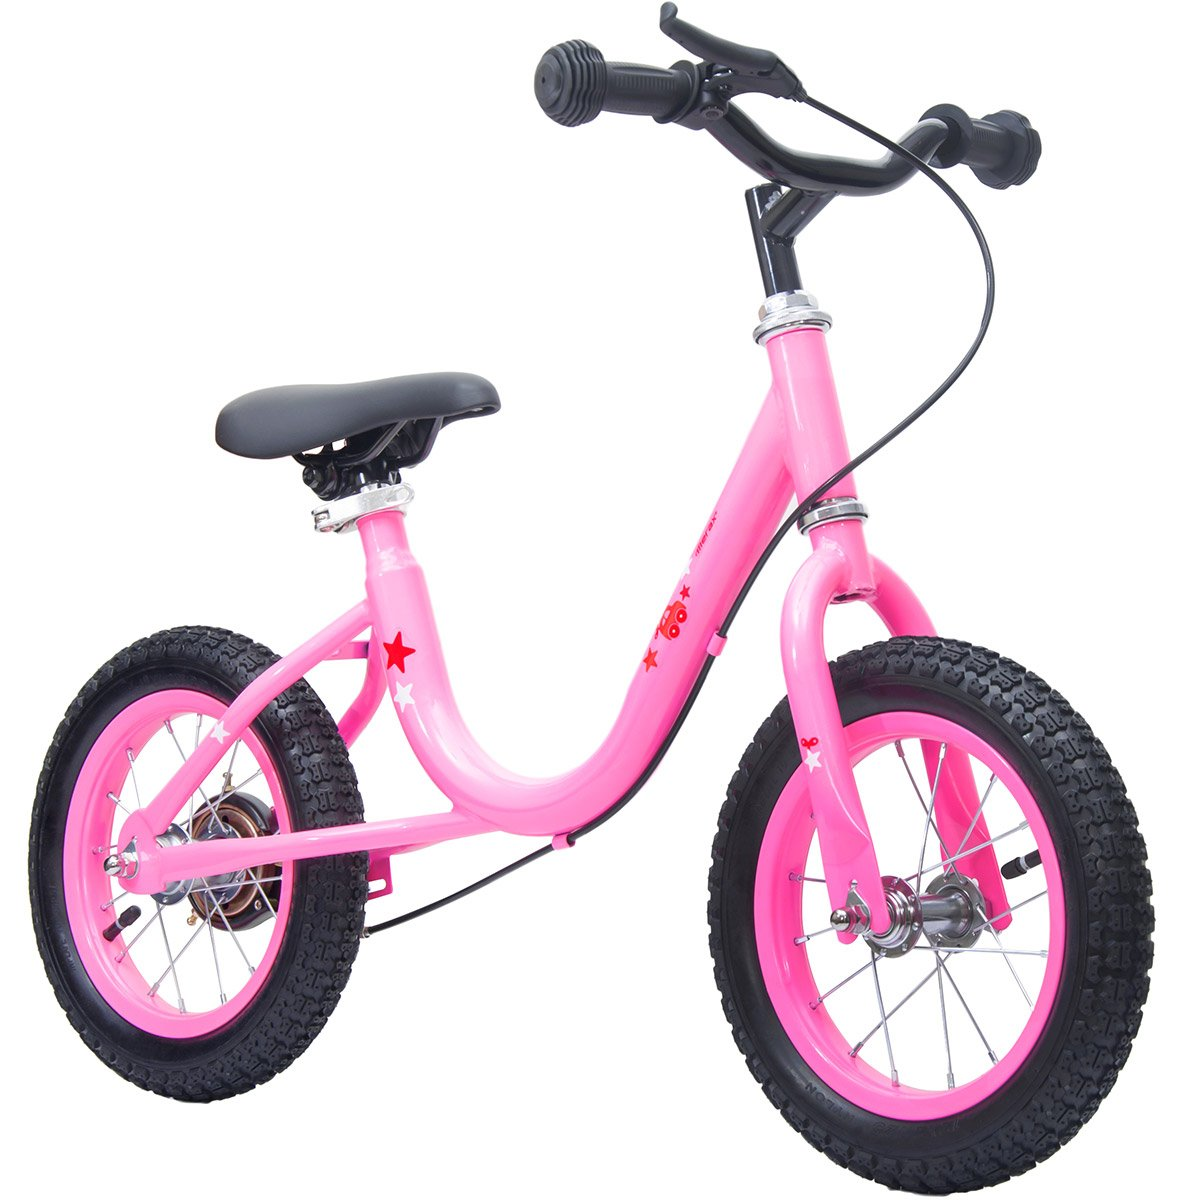 Merax Fun Series Kids' Balance Bike (Pink)